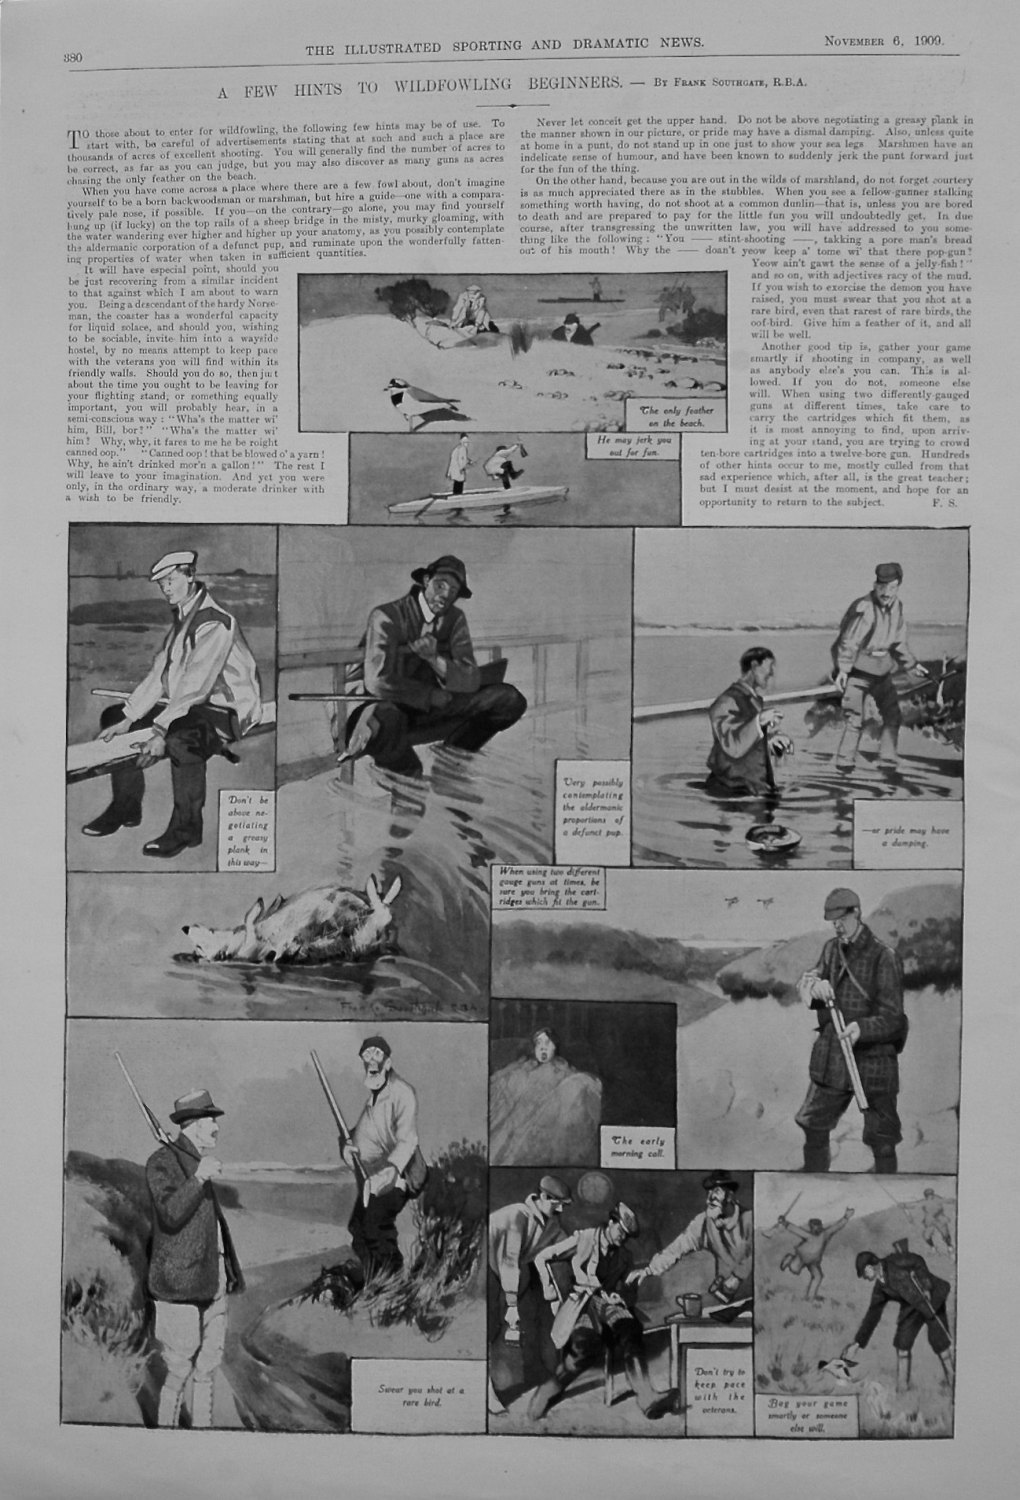 A Few Hints to Wildfowling Beginners. 1909